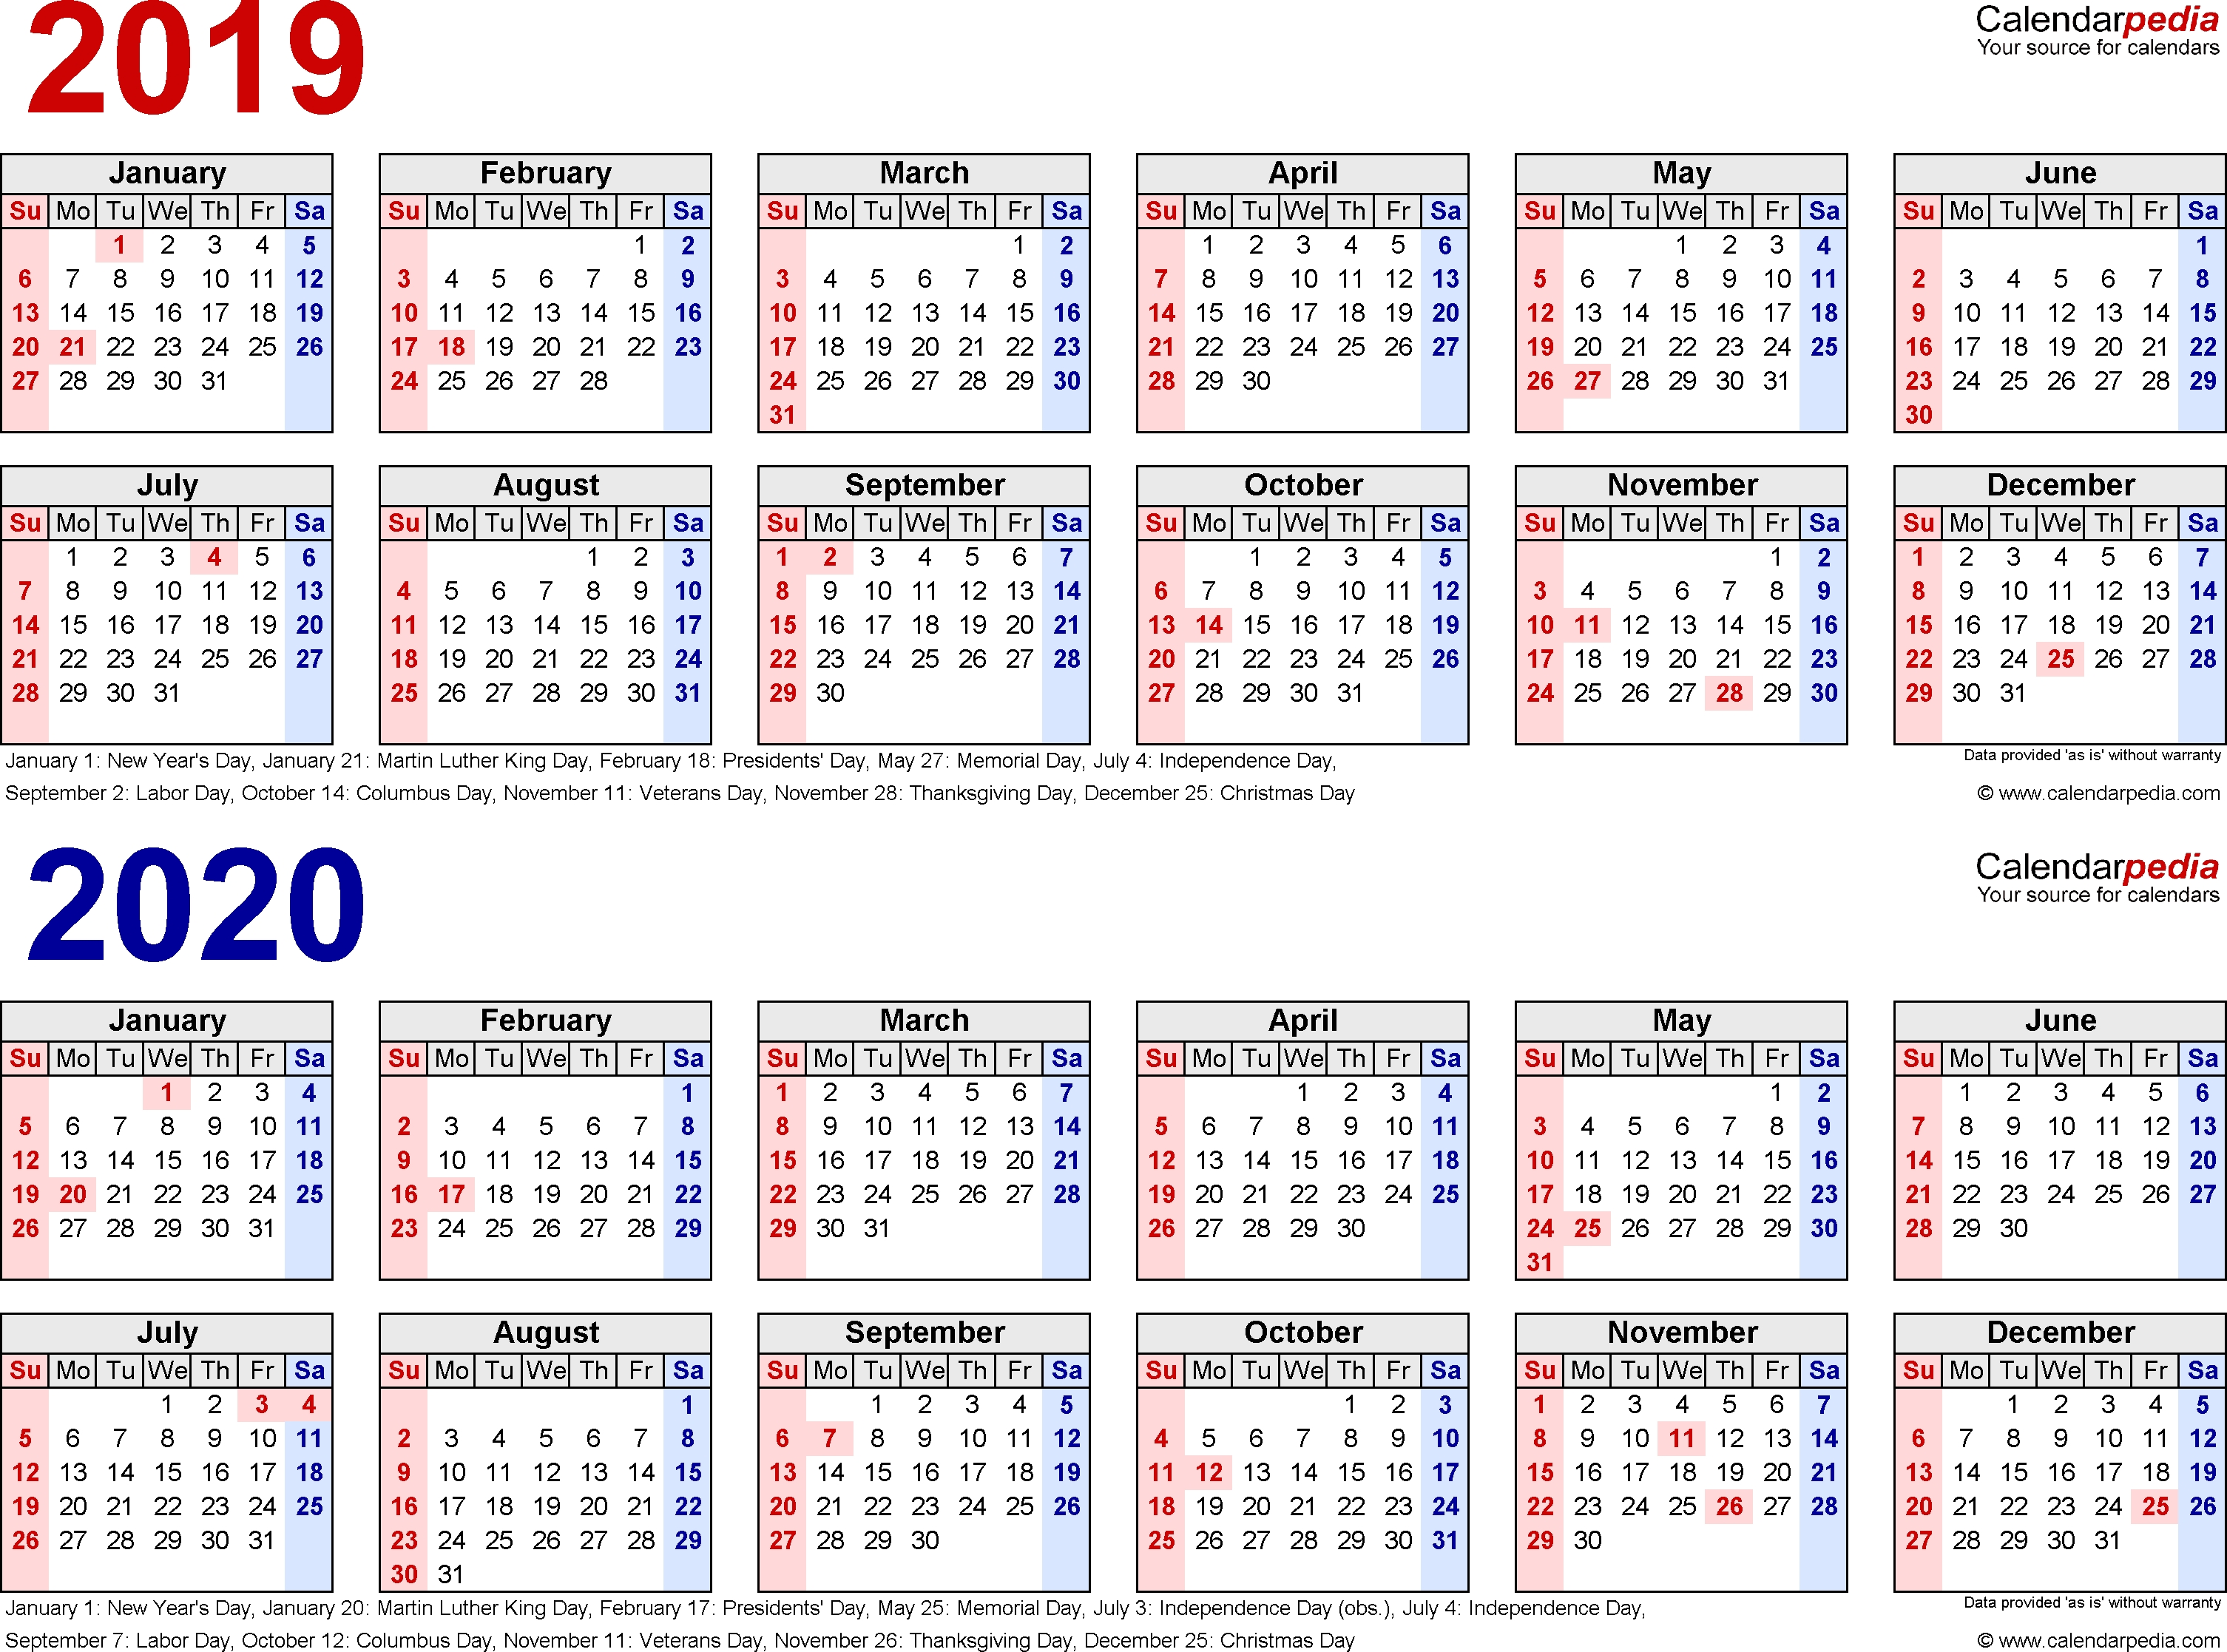 2019-2020 Calendar - Free Printable Two-Year Excel Calendars regarding 2020 Calendar